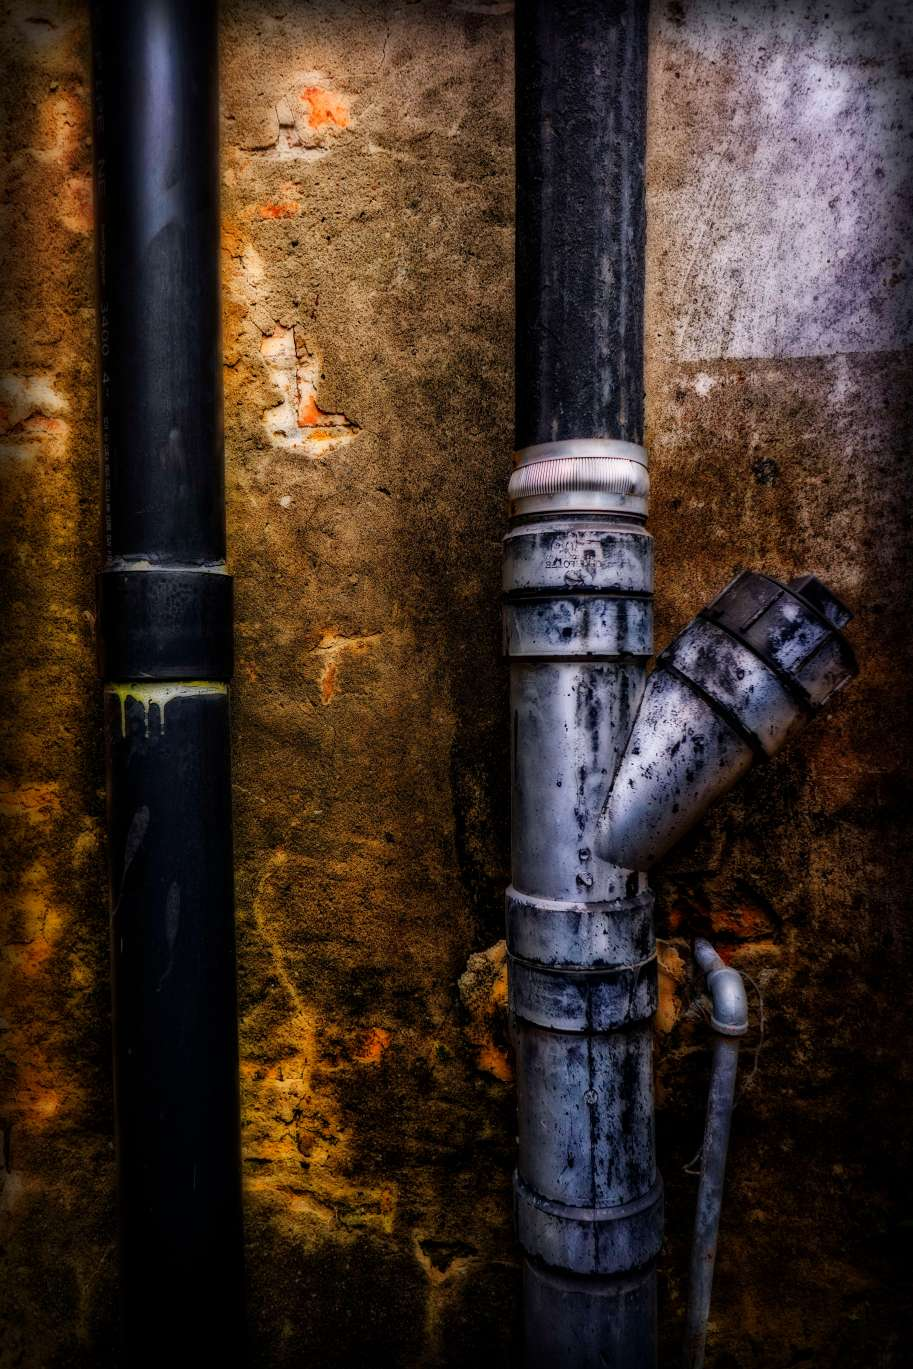 Pipe details.